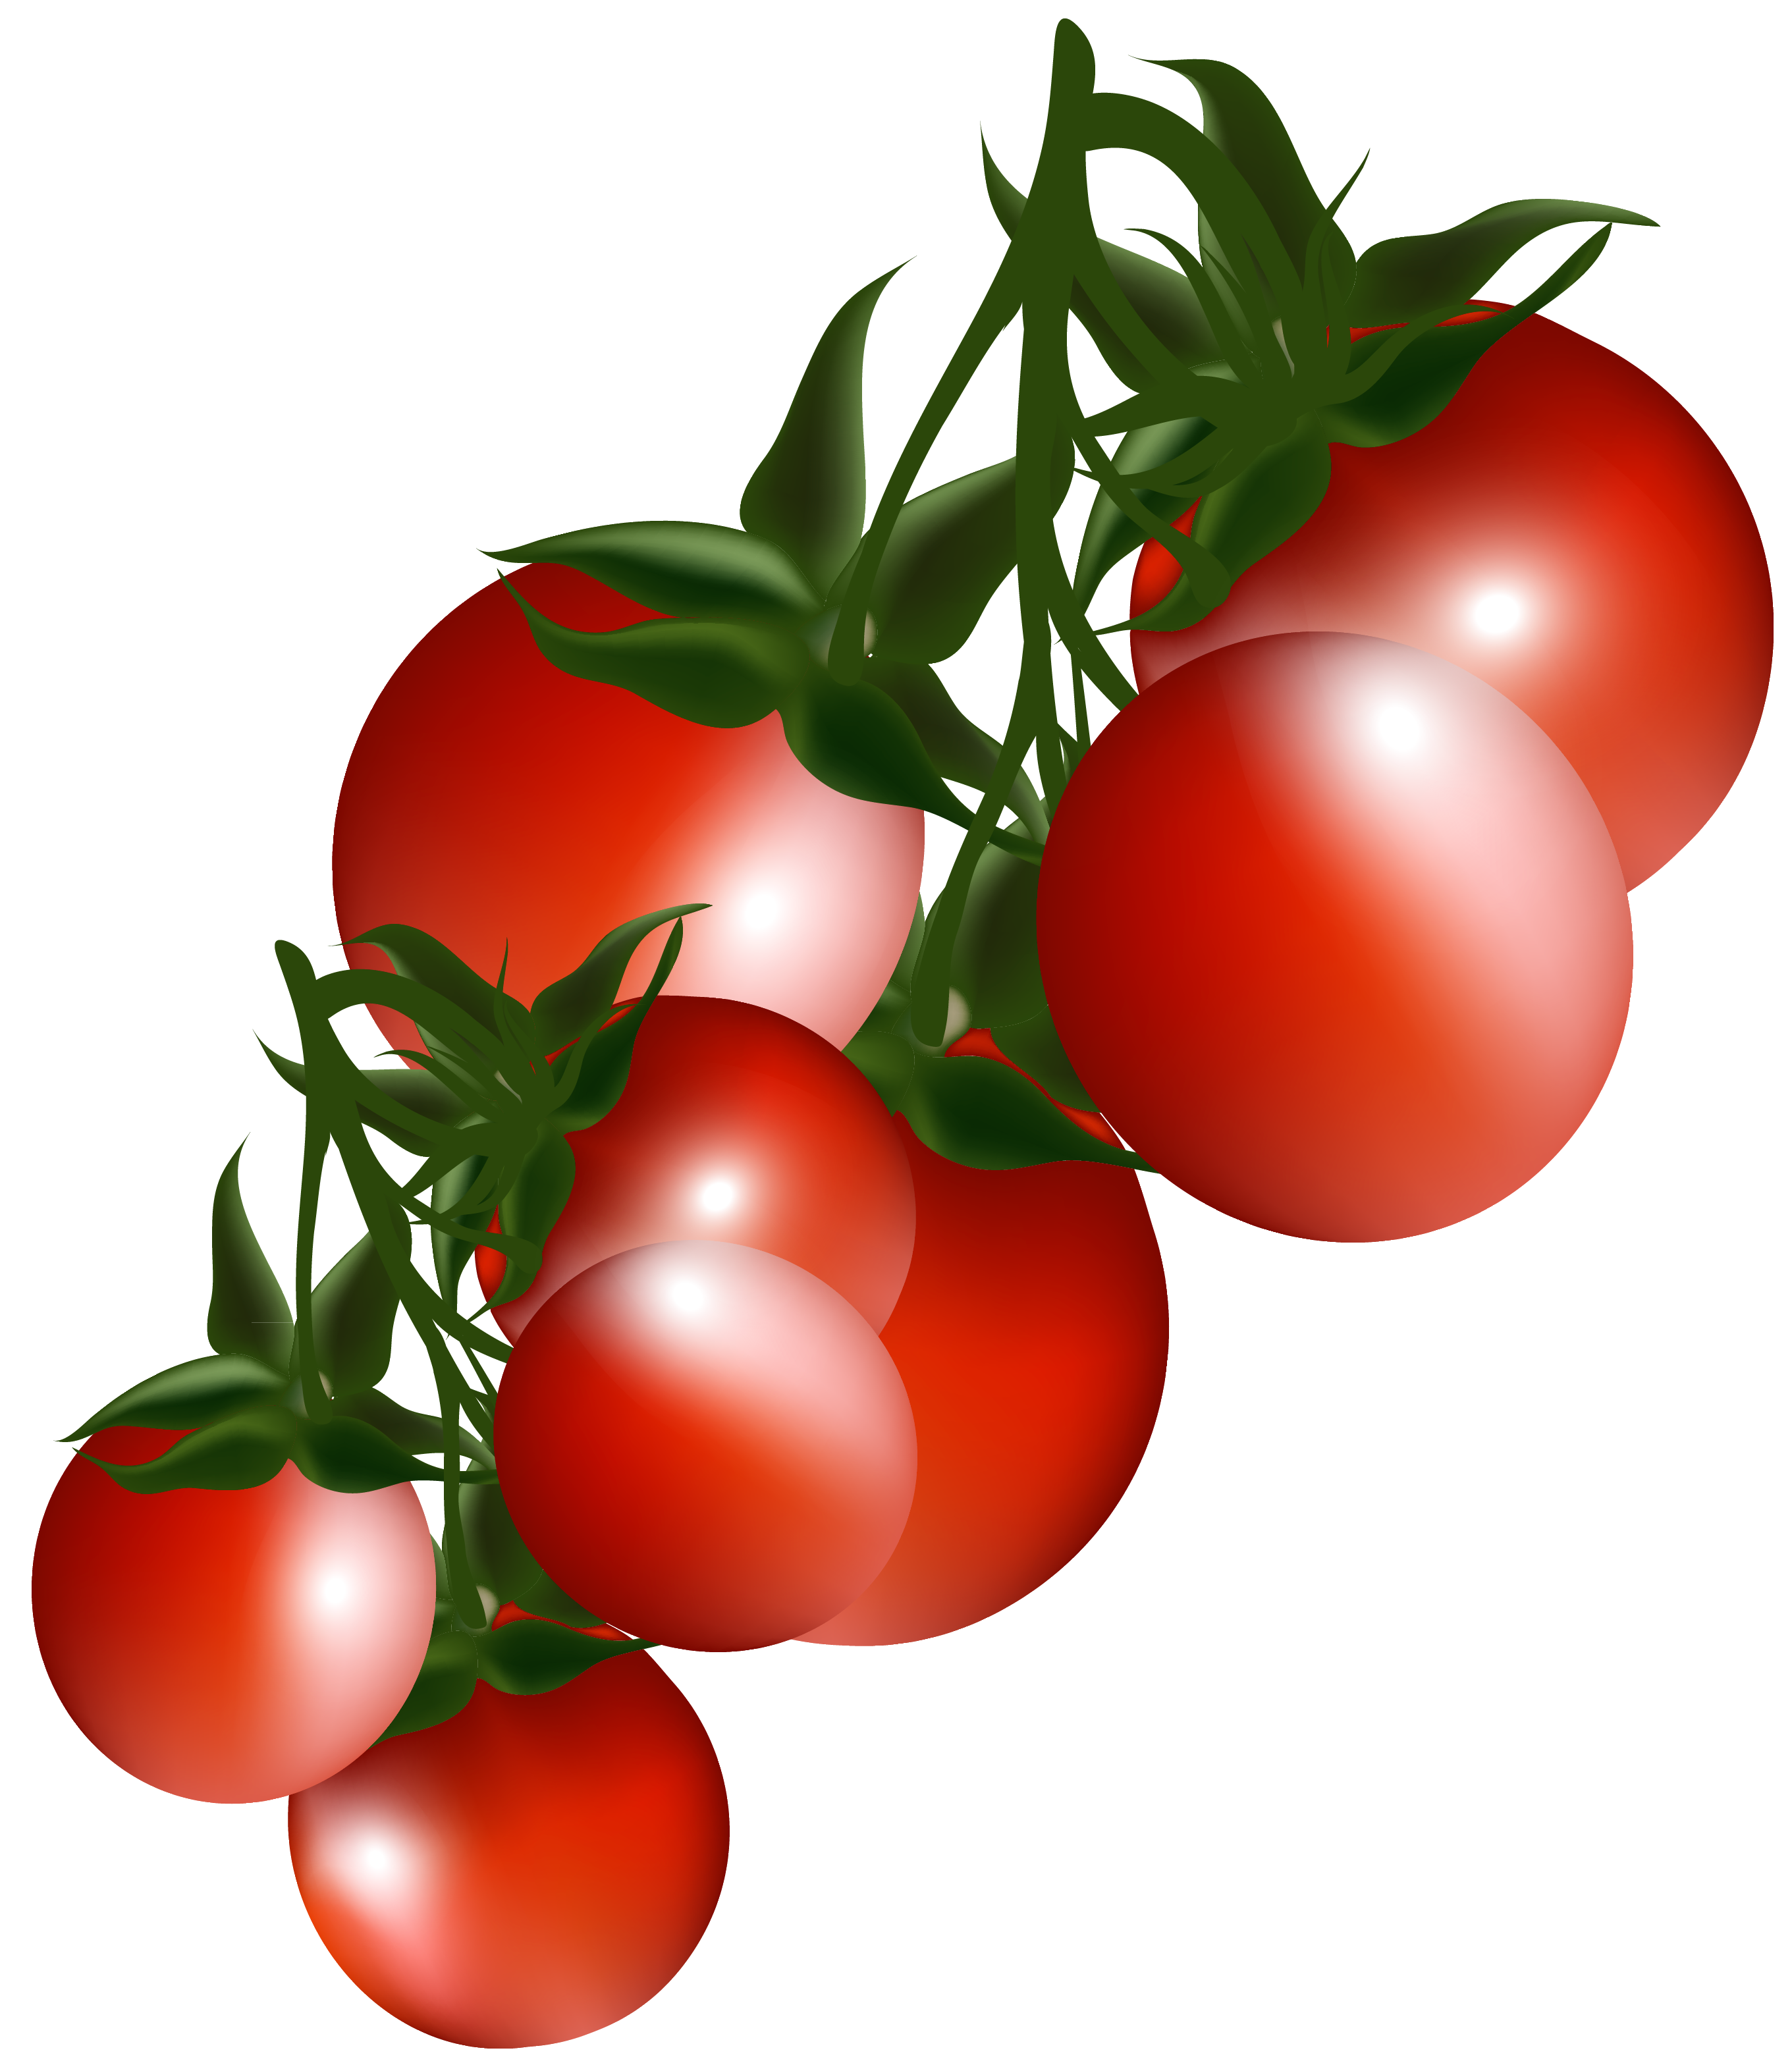 Tomatoes branch png picture. Fruits clipart bush